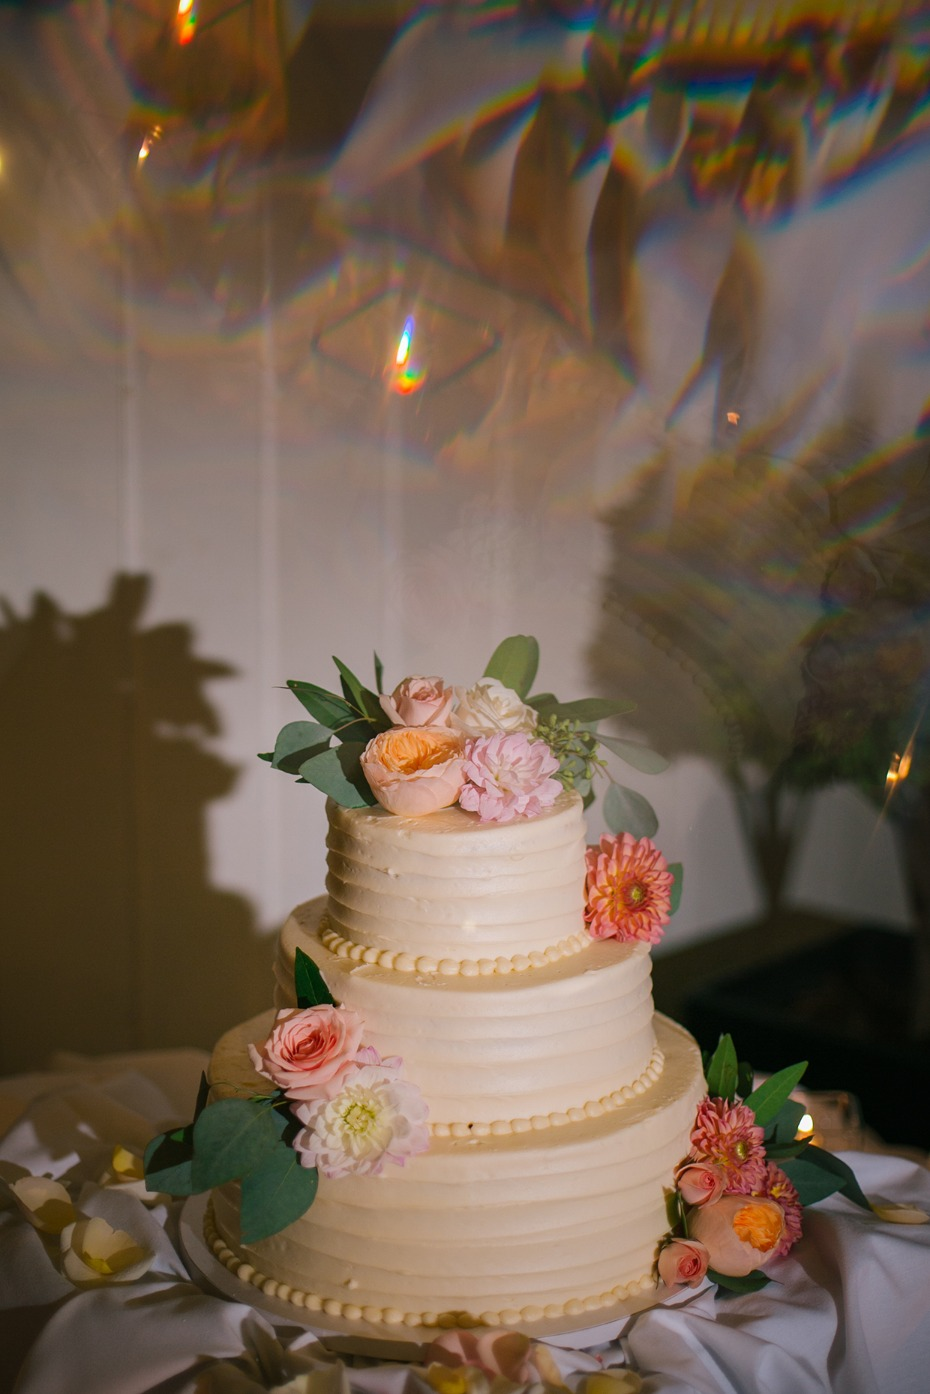 Wedding cake covered in flowers